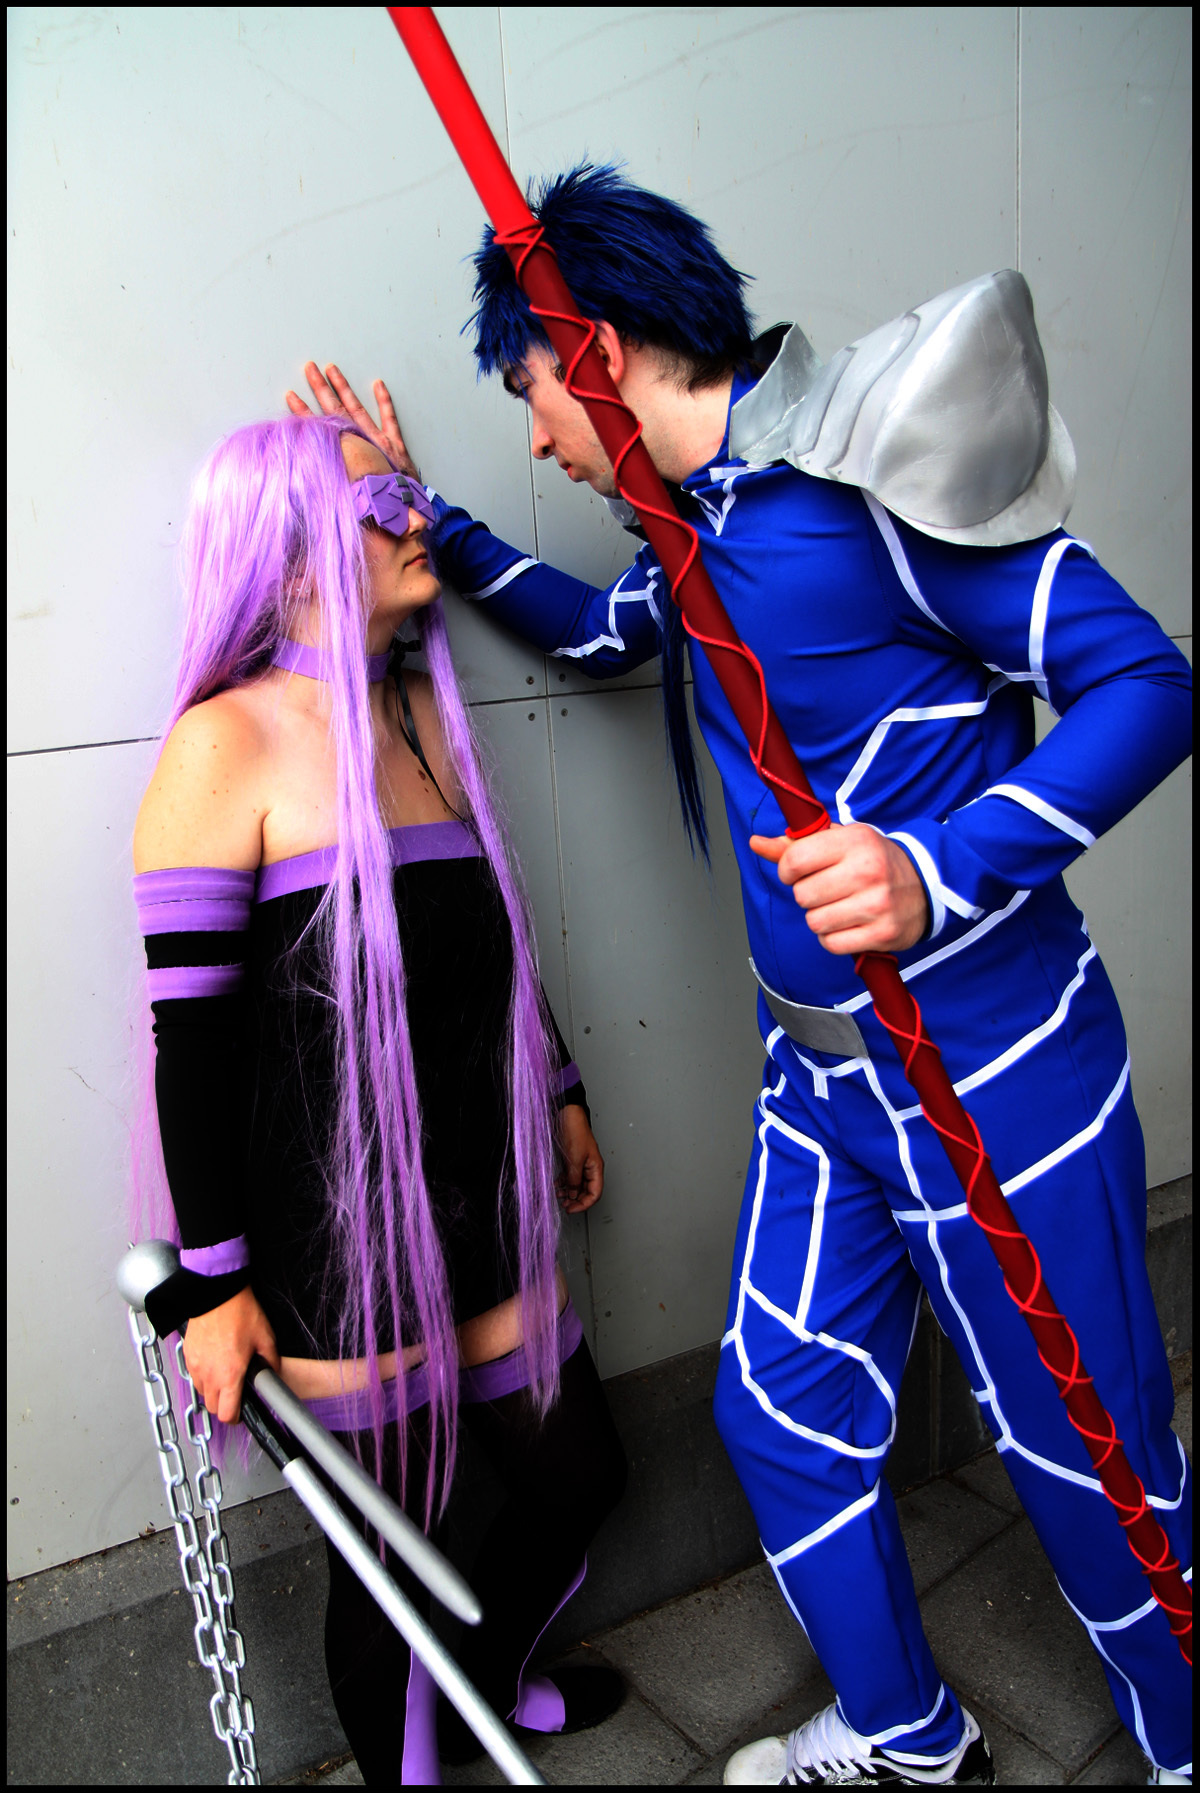 Cospix.net photo featuring MDACosplay